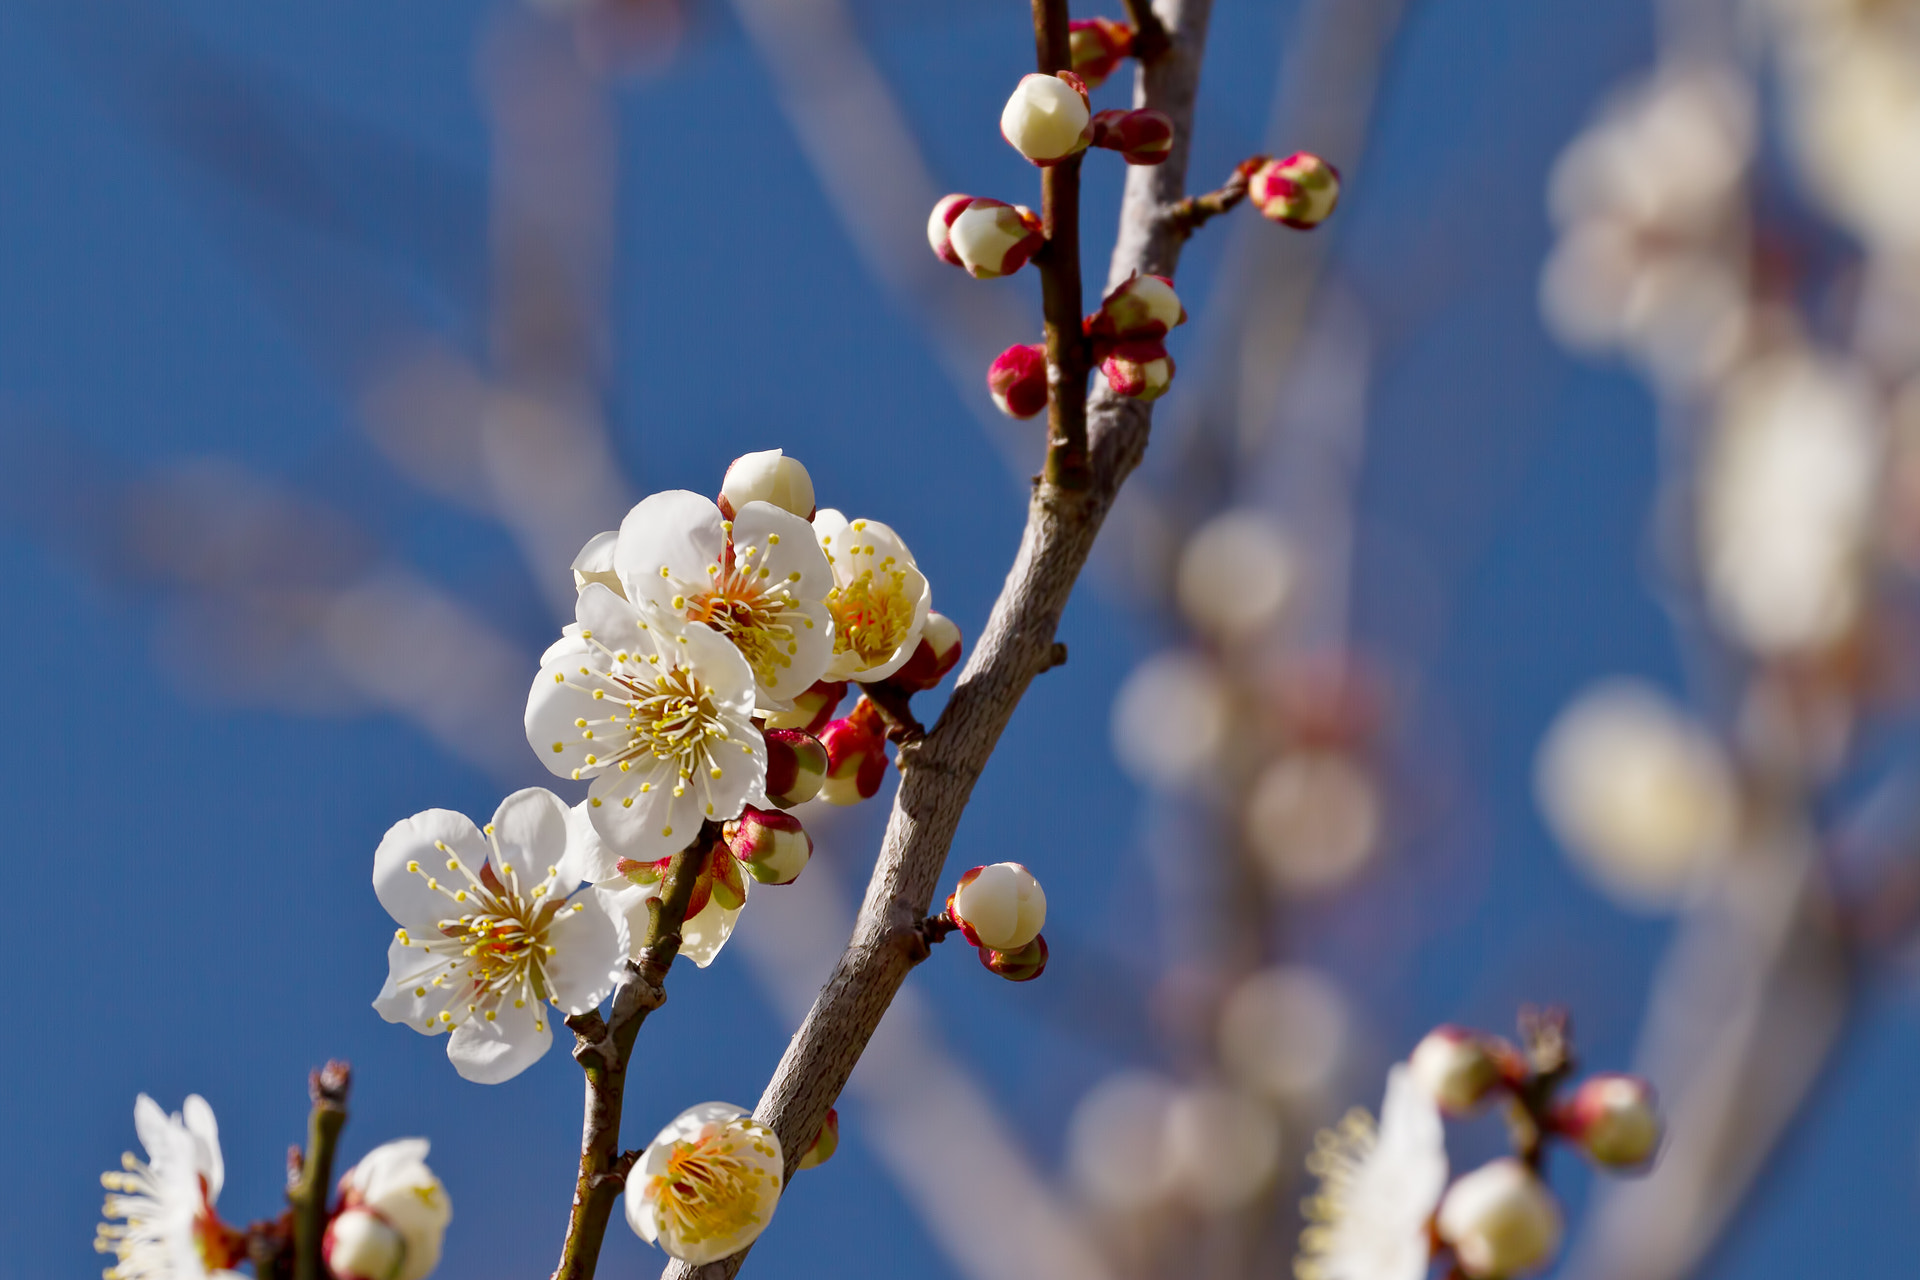 Photograph UME by MIYAMOTO Y on 500px